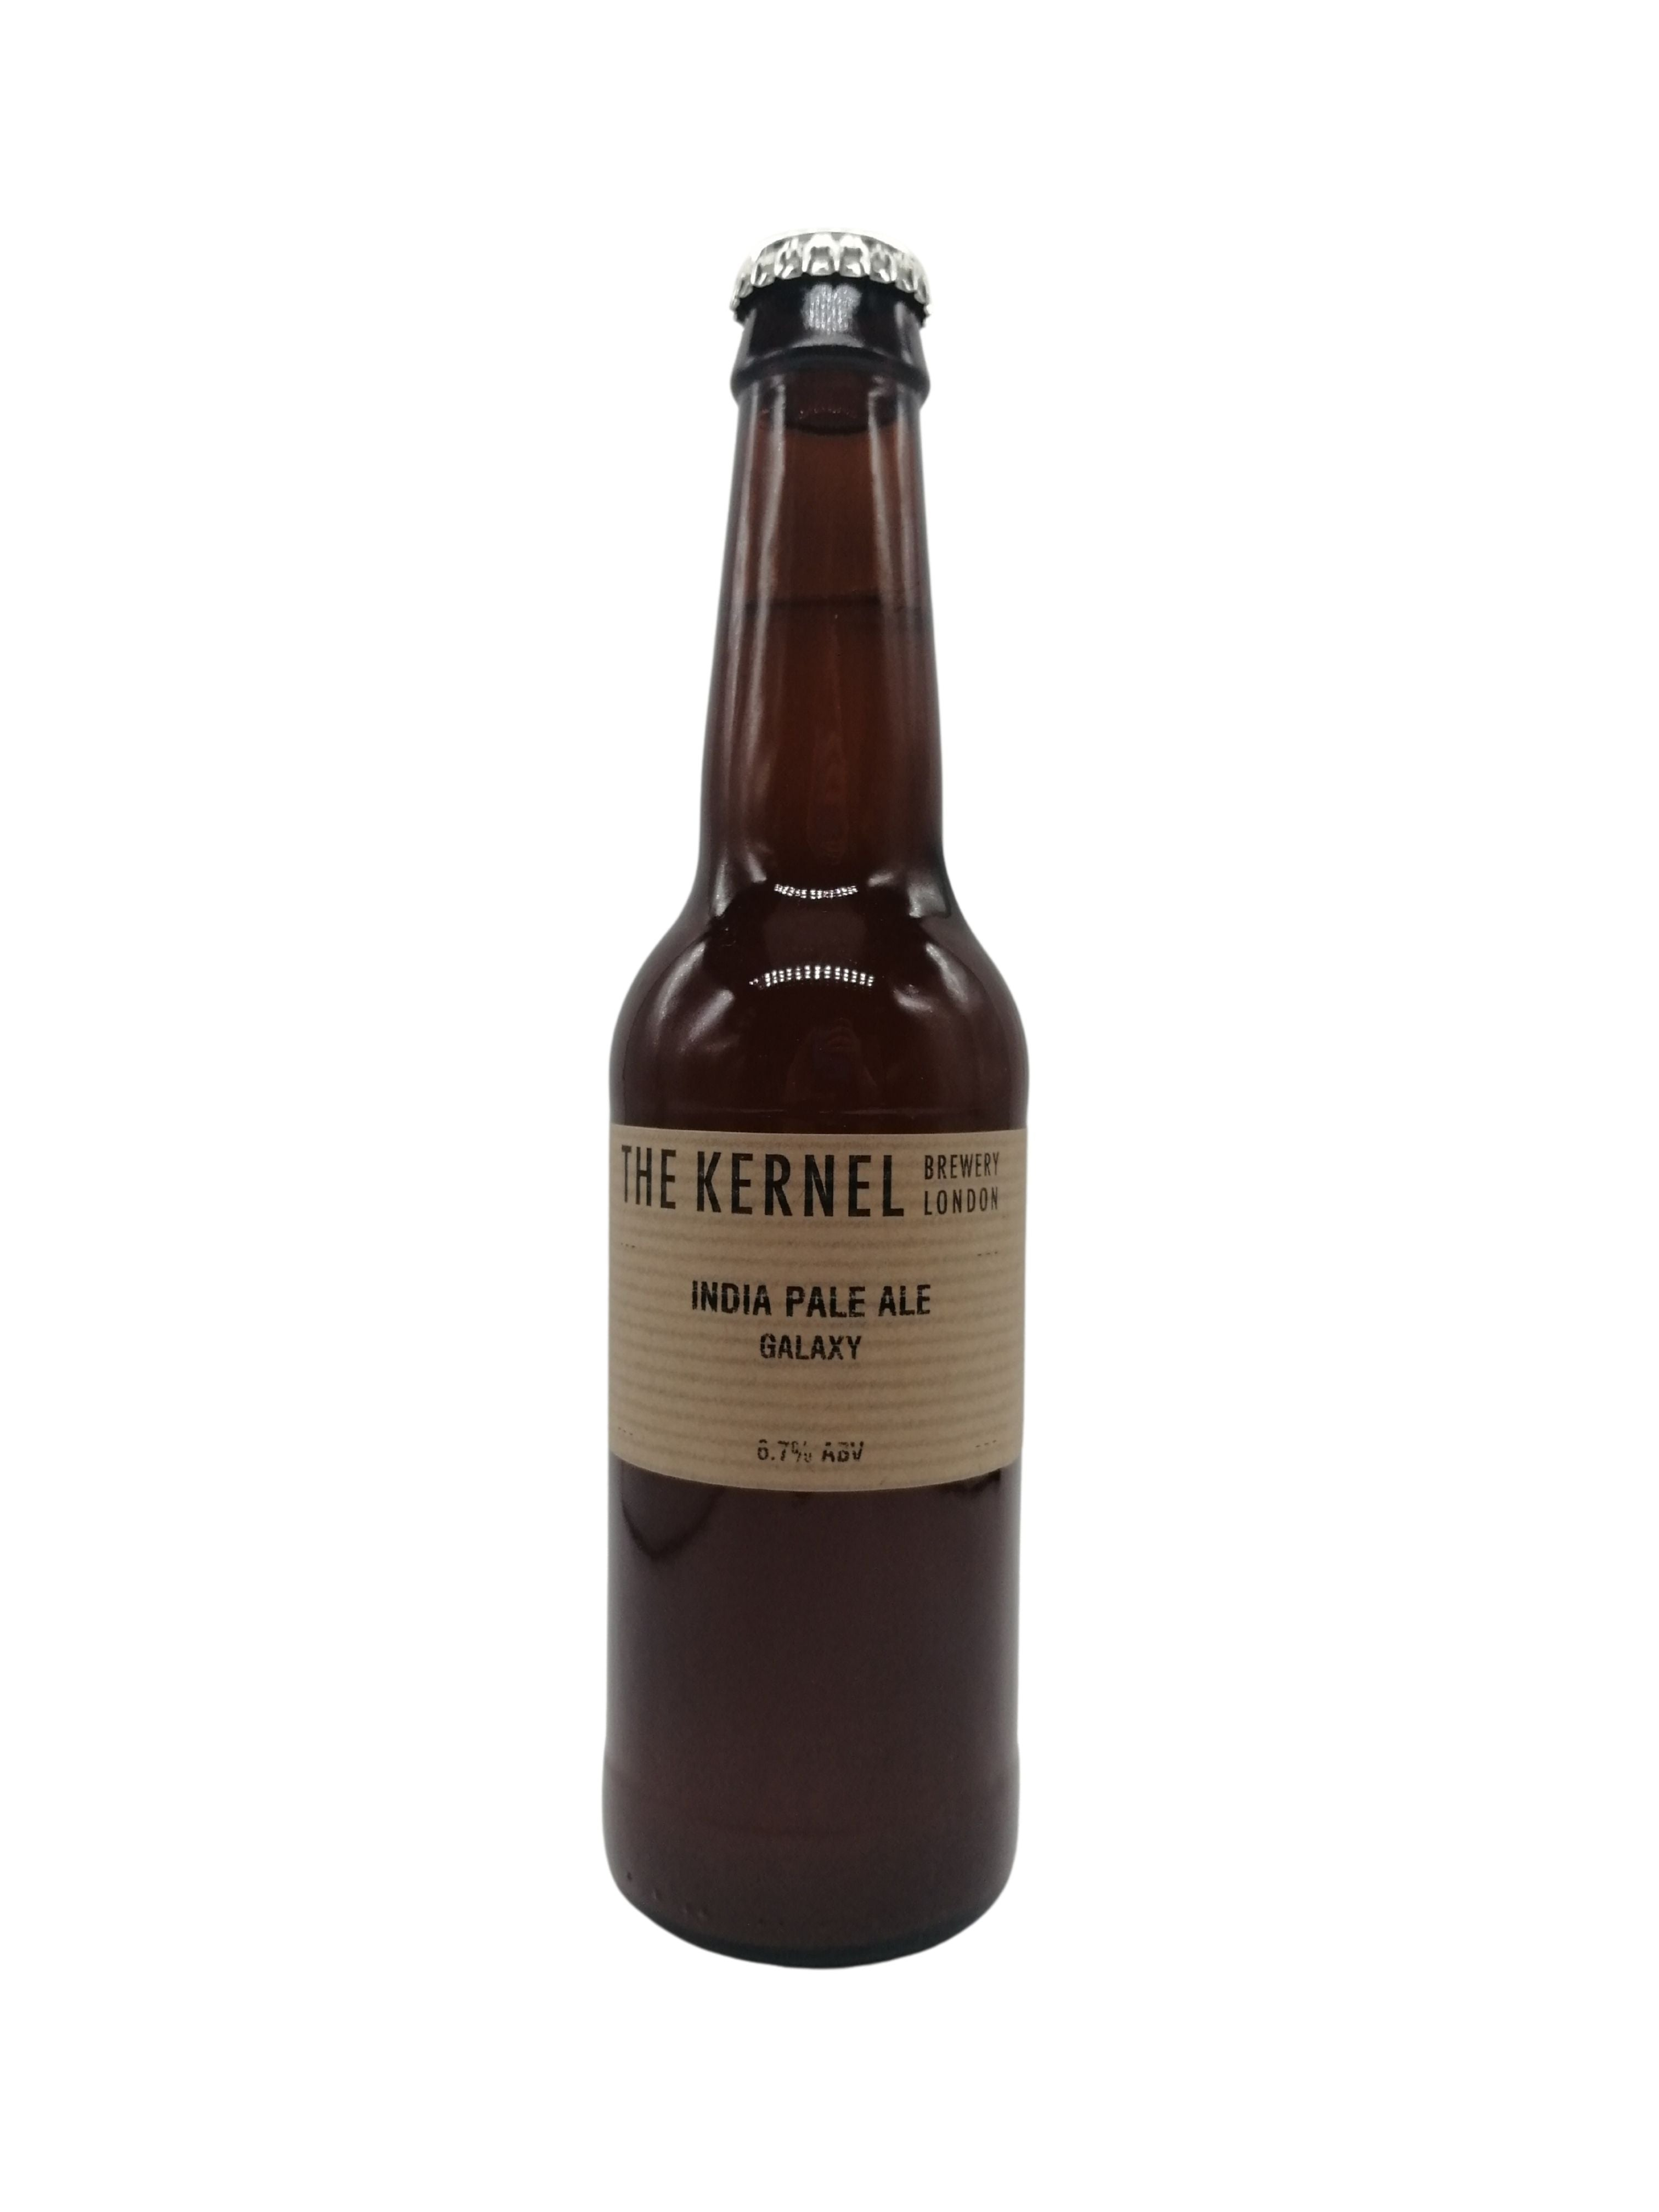 The Kernel - India Pale Ale Galaxy - IPA - 6.7% (3.89 UT)